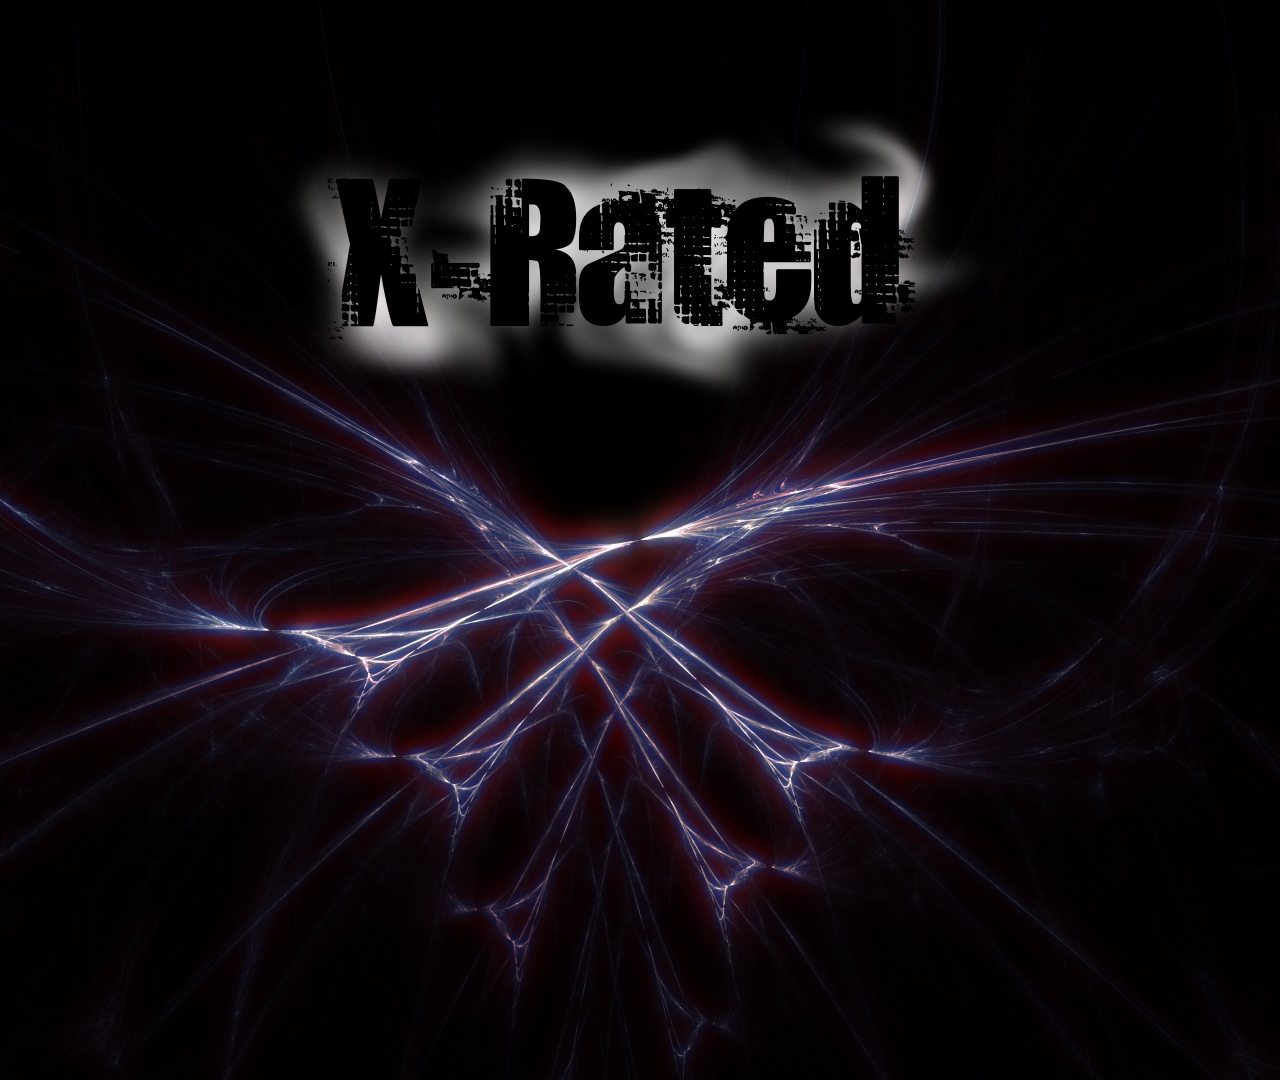 x rated clan wallpaper by kilroy567 on deviantart